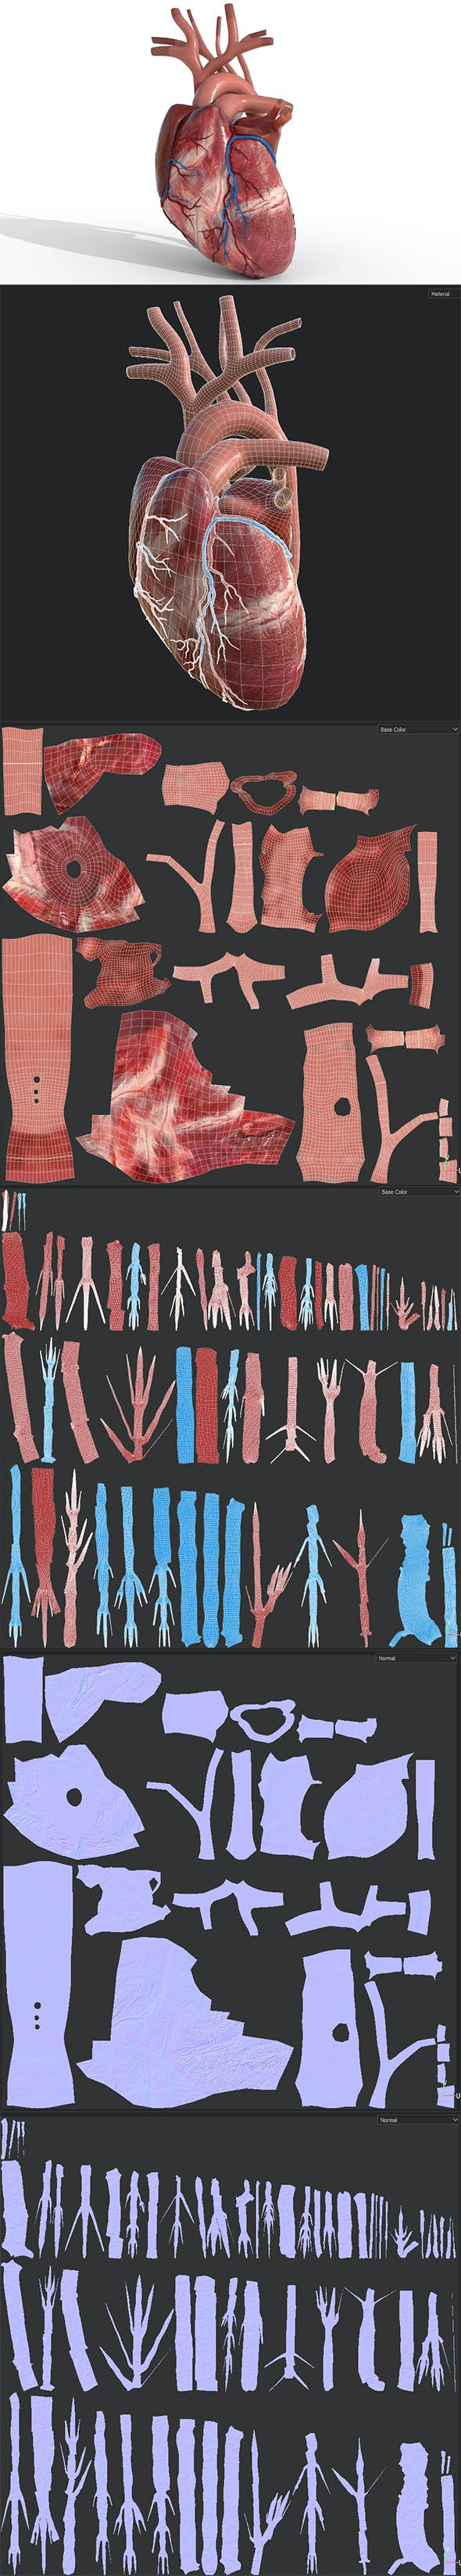 Human Heart animated - 3DOcean Item for Sale